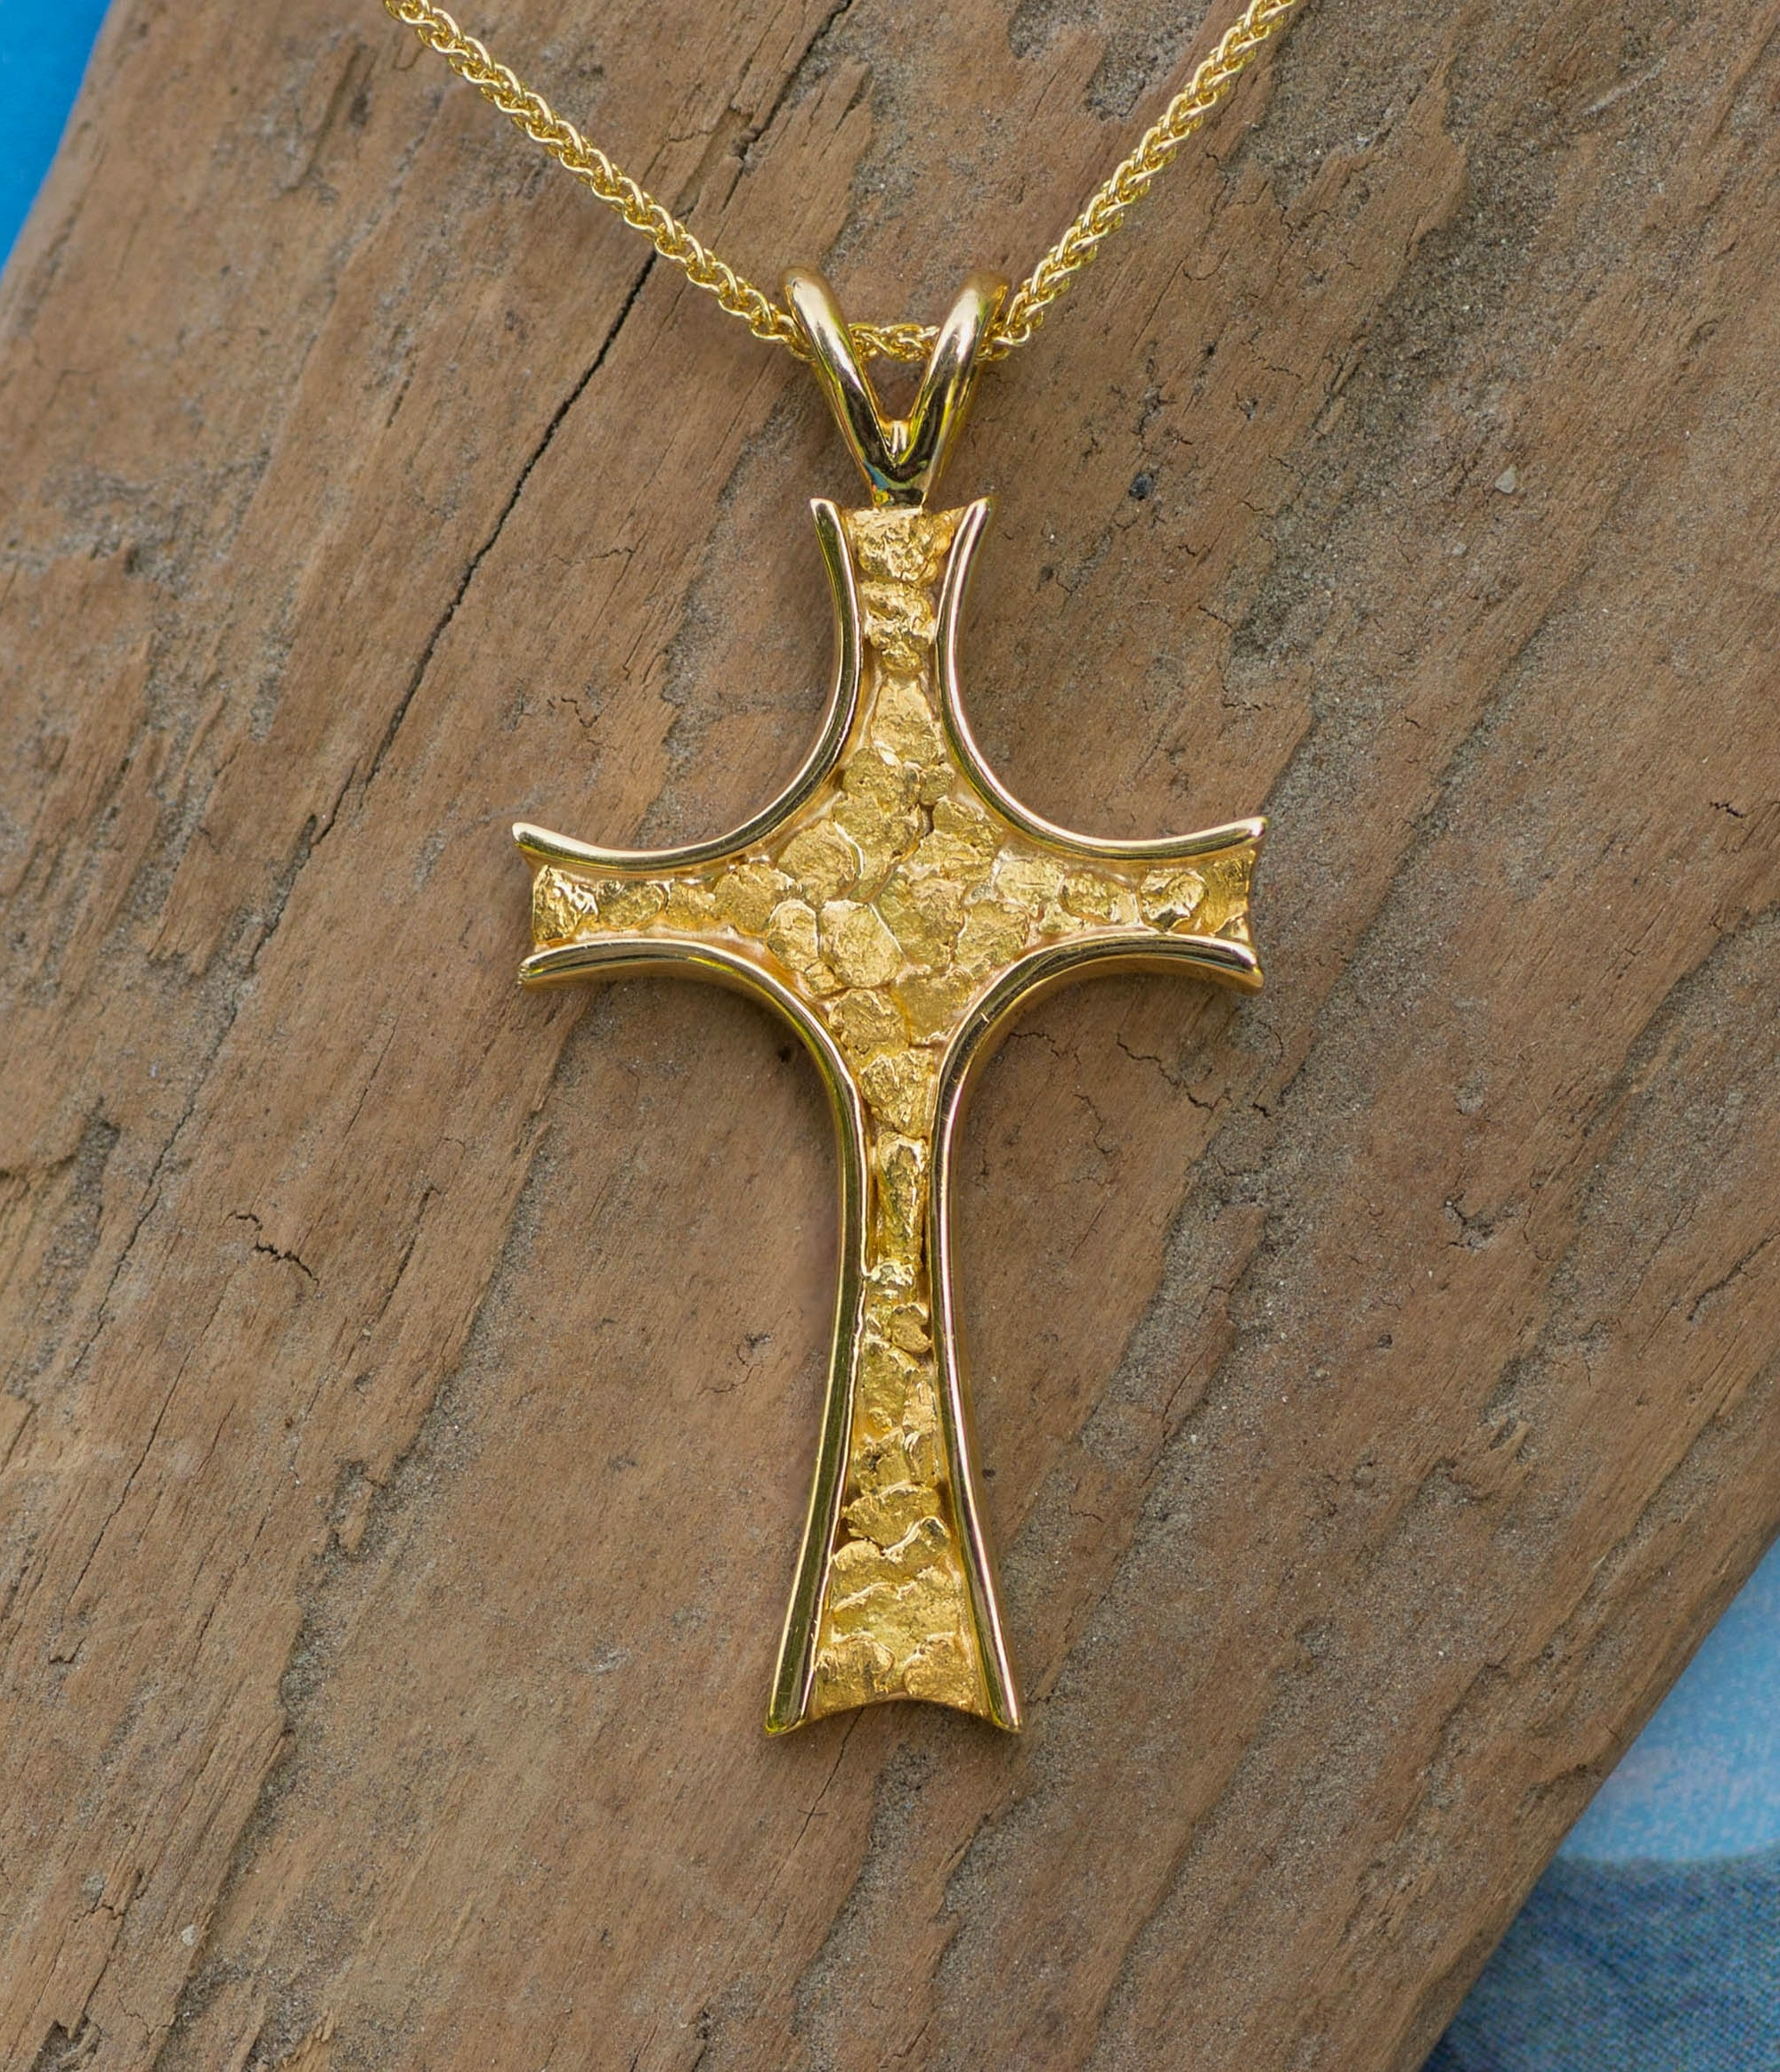 Alaskan Gold Nuggets in 14kt Yellow Gold Cross pendant